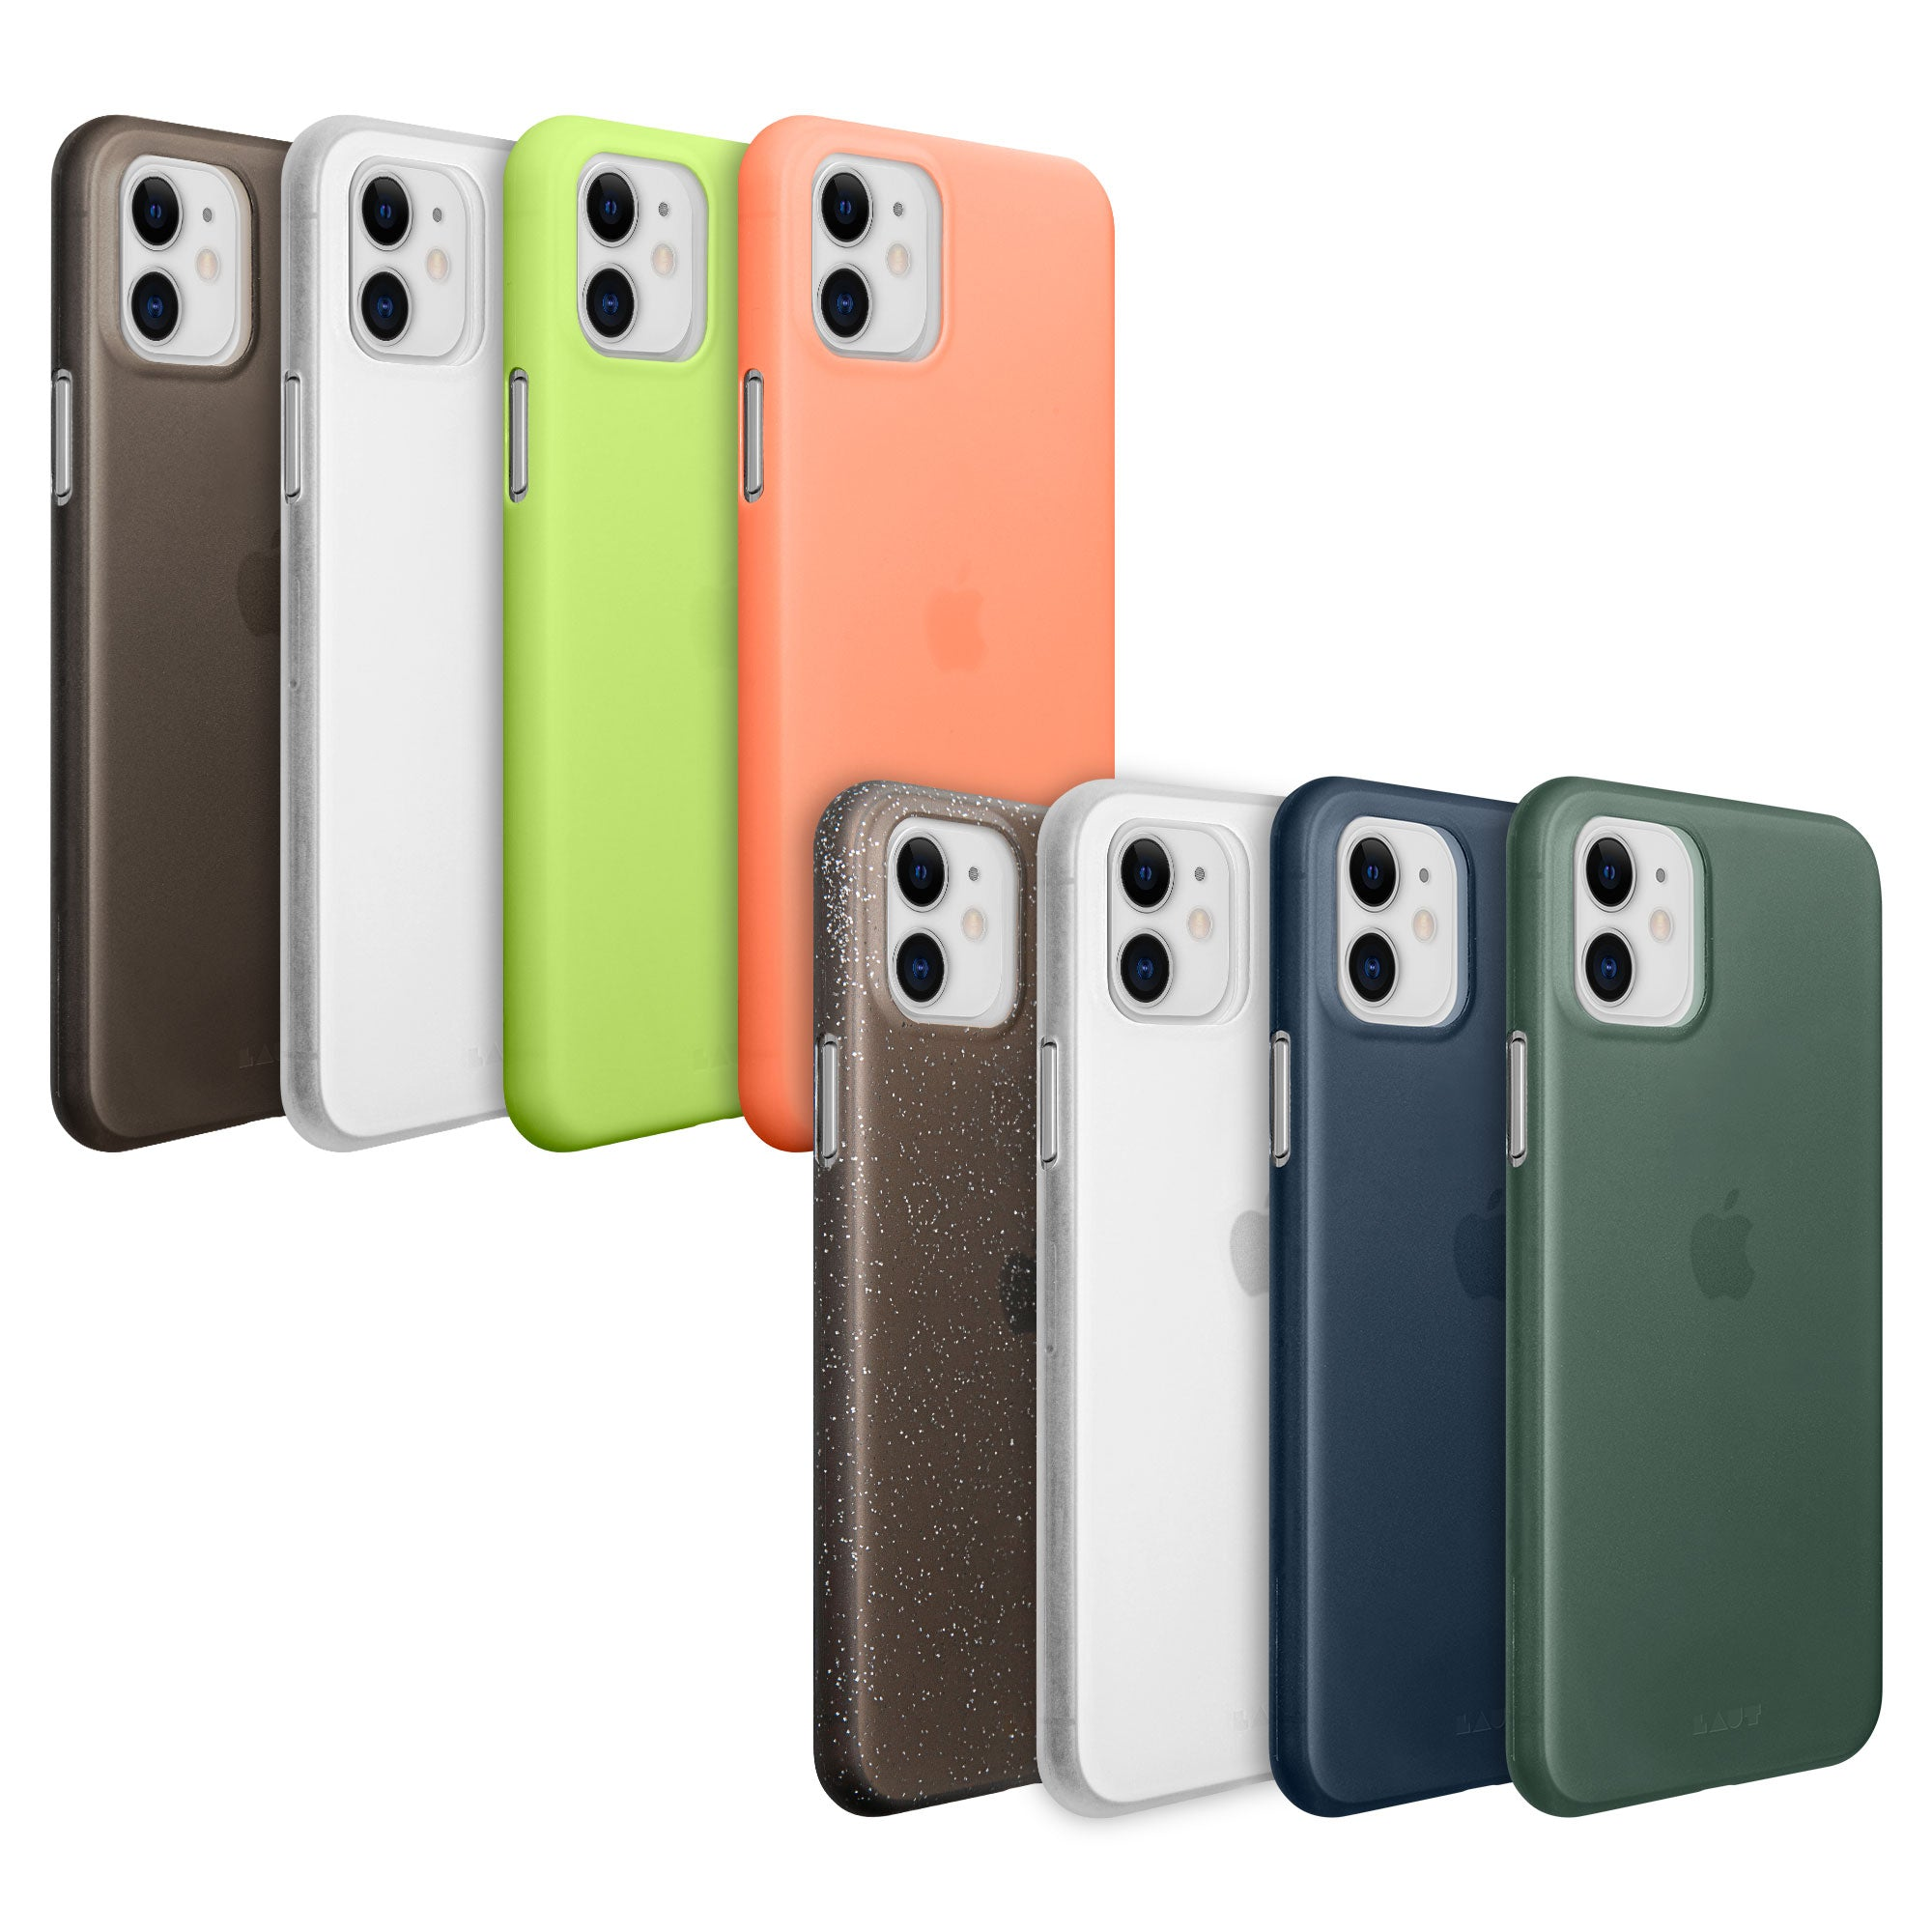 SLIMSKIN for iPhone 11 Series